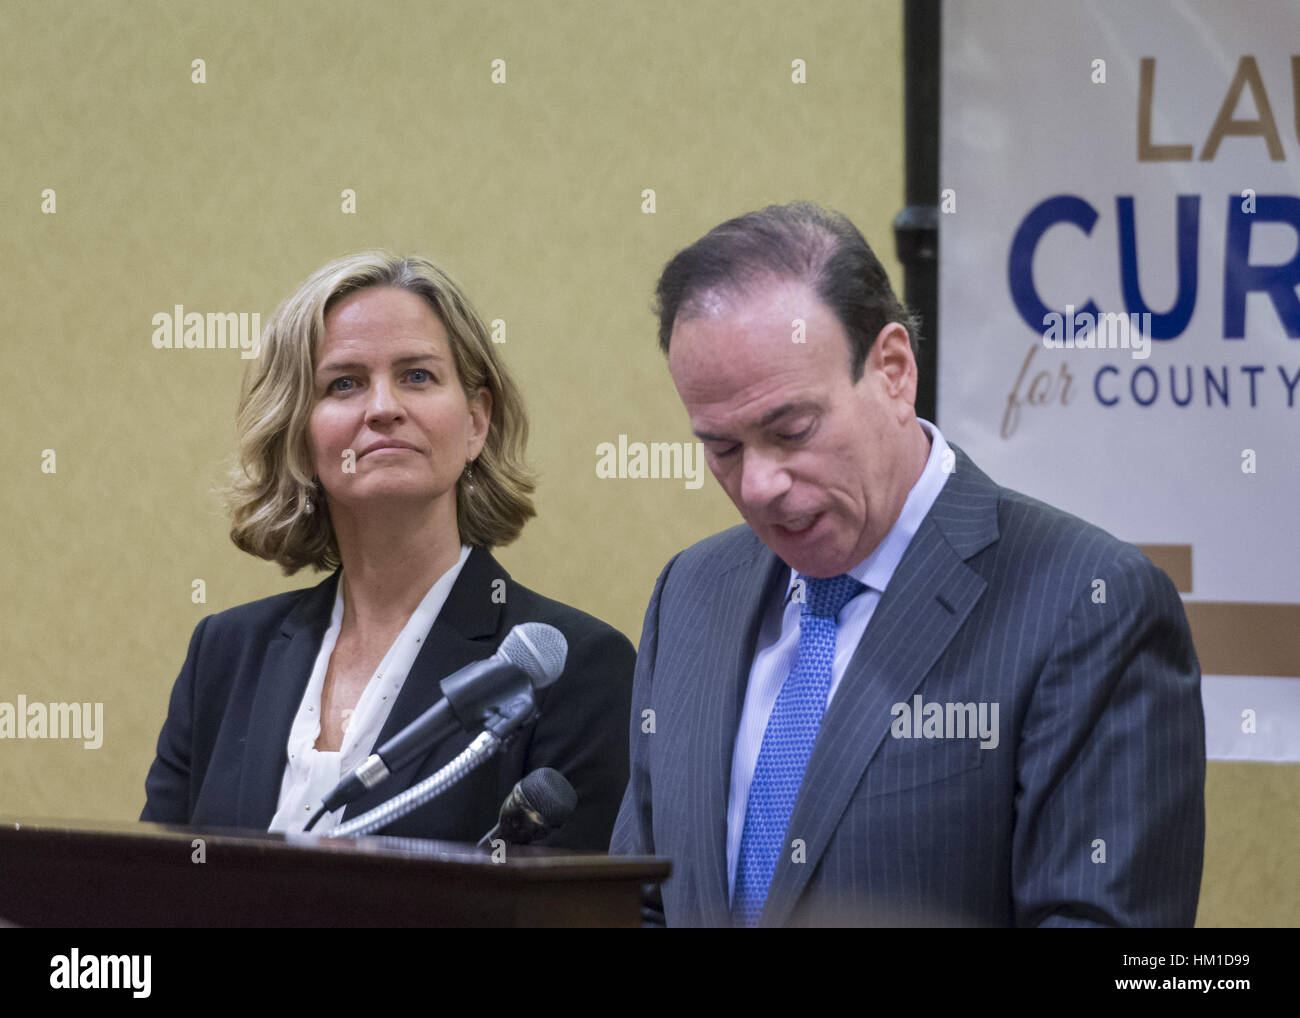 Uniondale, USA. 30th Jan, 2017. At left, Nassau County Legislator Laura Curran, 48, candidate for Nassau County Stock Photo